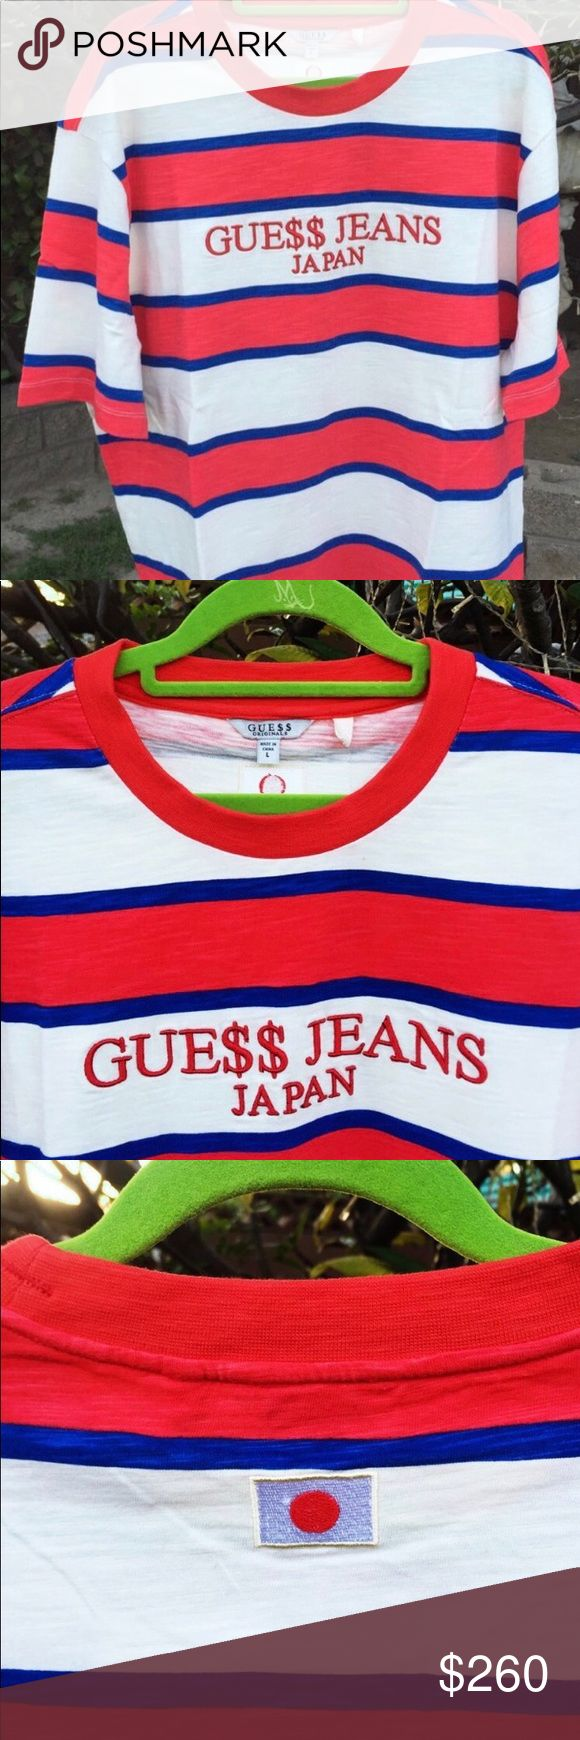 Guess x ASAP collab. Japan exclusive. ASAP Rocky x Guess Japan exclusive , Brand new, Open to offers and trades Guess Shirts Tees - Short Sleeve